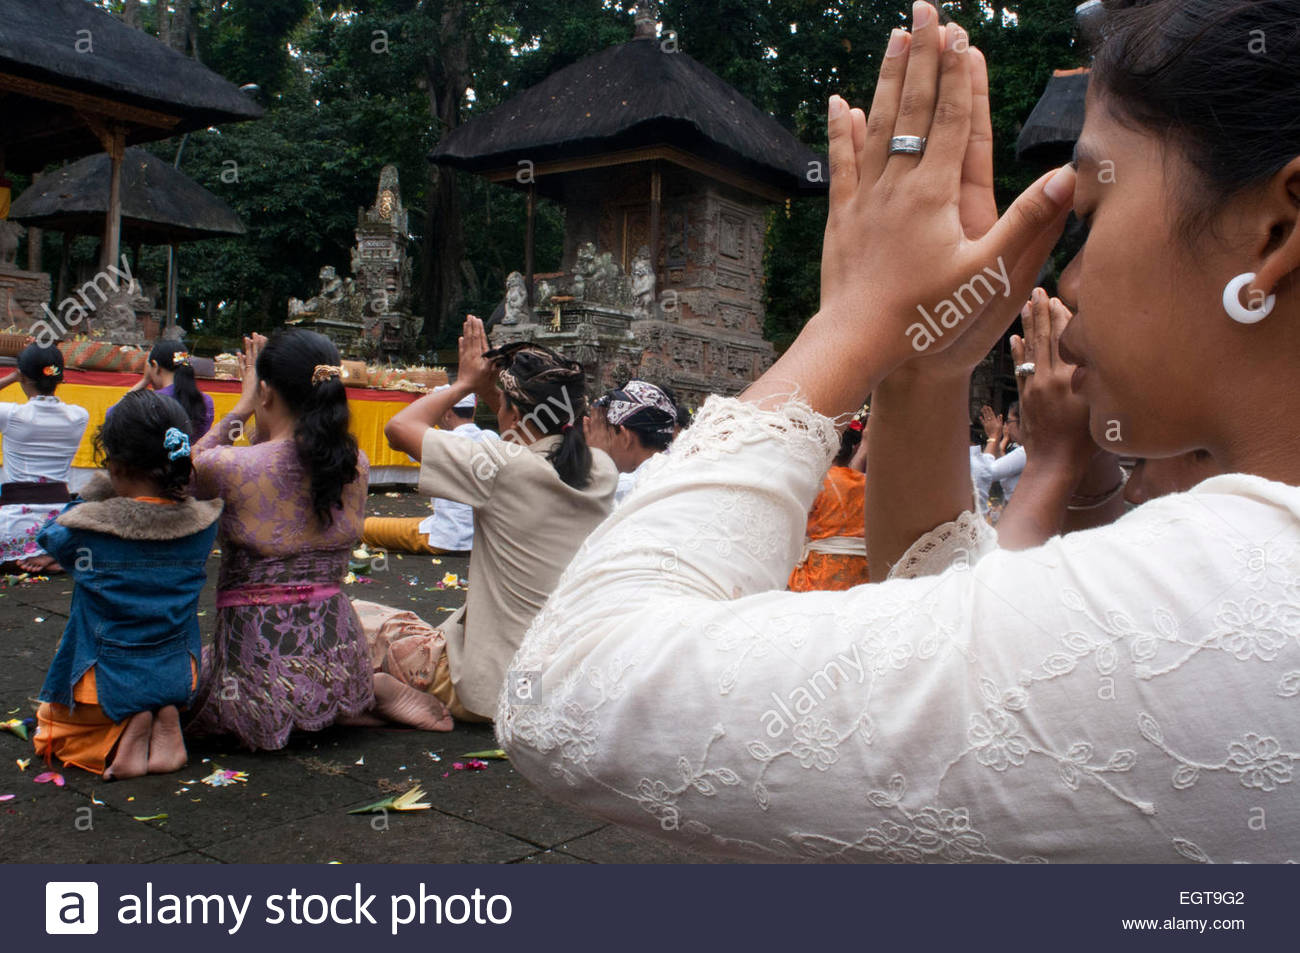 A BALINESE family and friends prays at PURA TIRTA EMPUL a Hindu Temple complex and cold springs - TAMPAKSIRING, - Stock Image